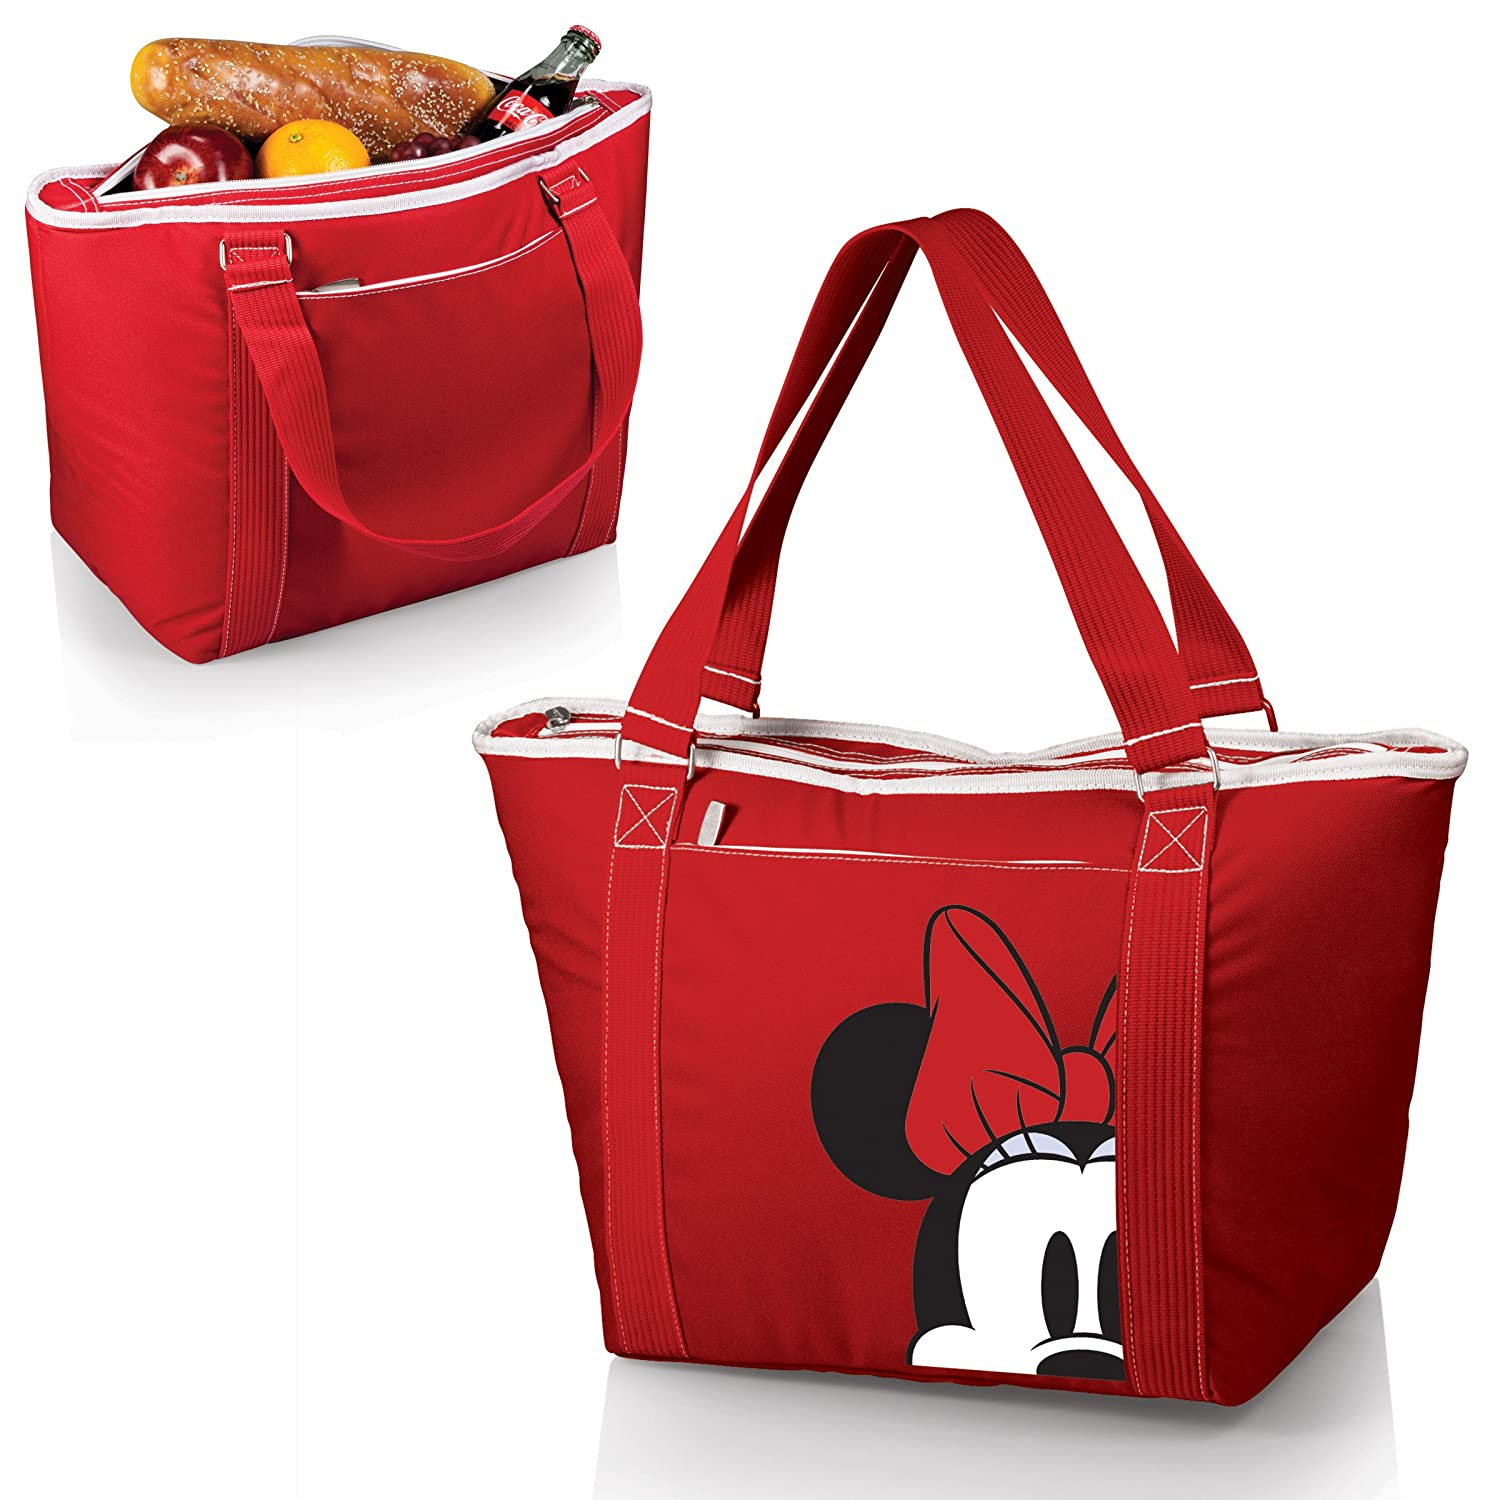 Disney Classics Mickey Minnie Mouse Topanga Insulated Cooler Bag